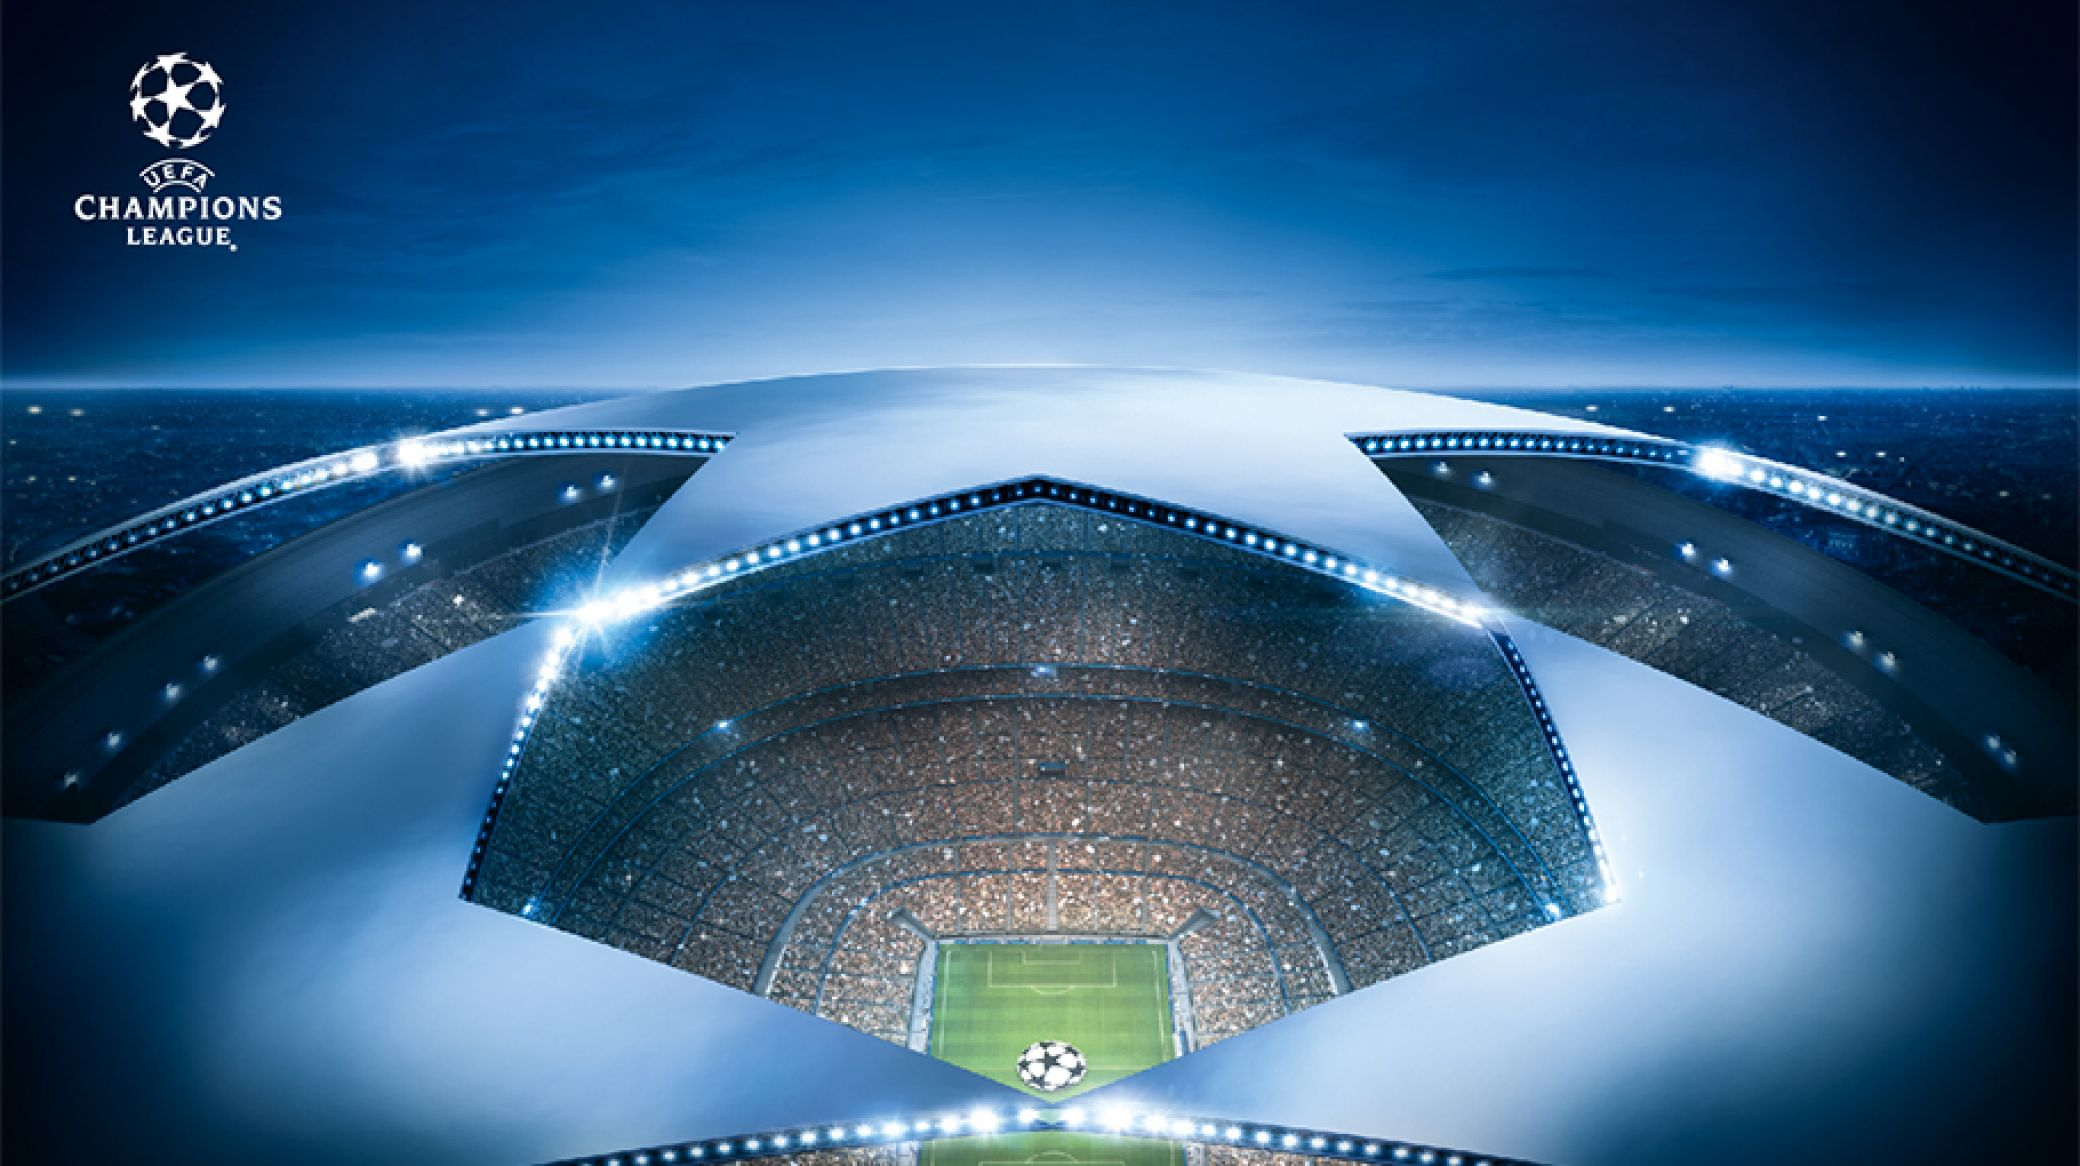 Champions League-tickets